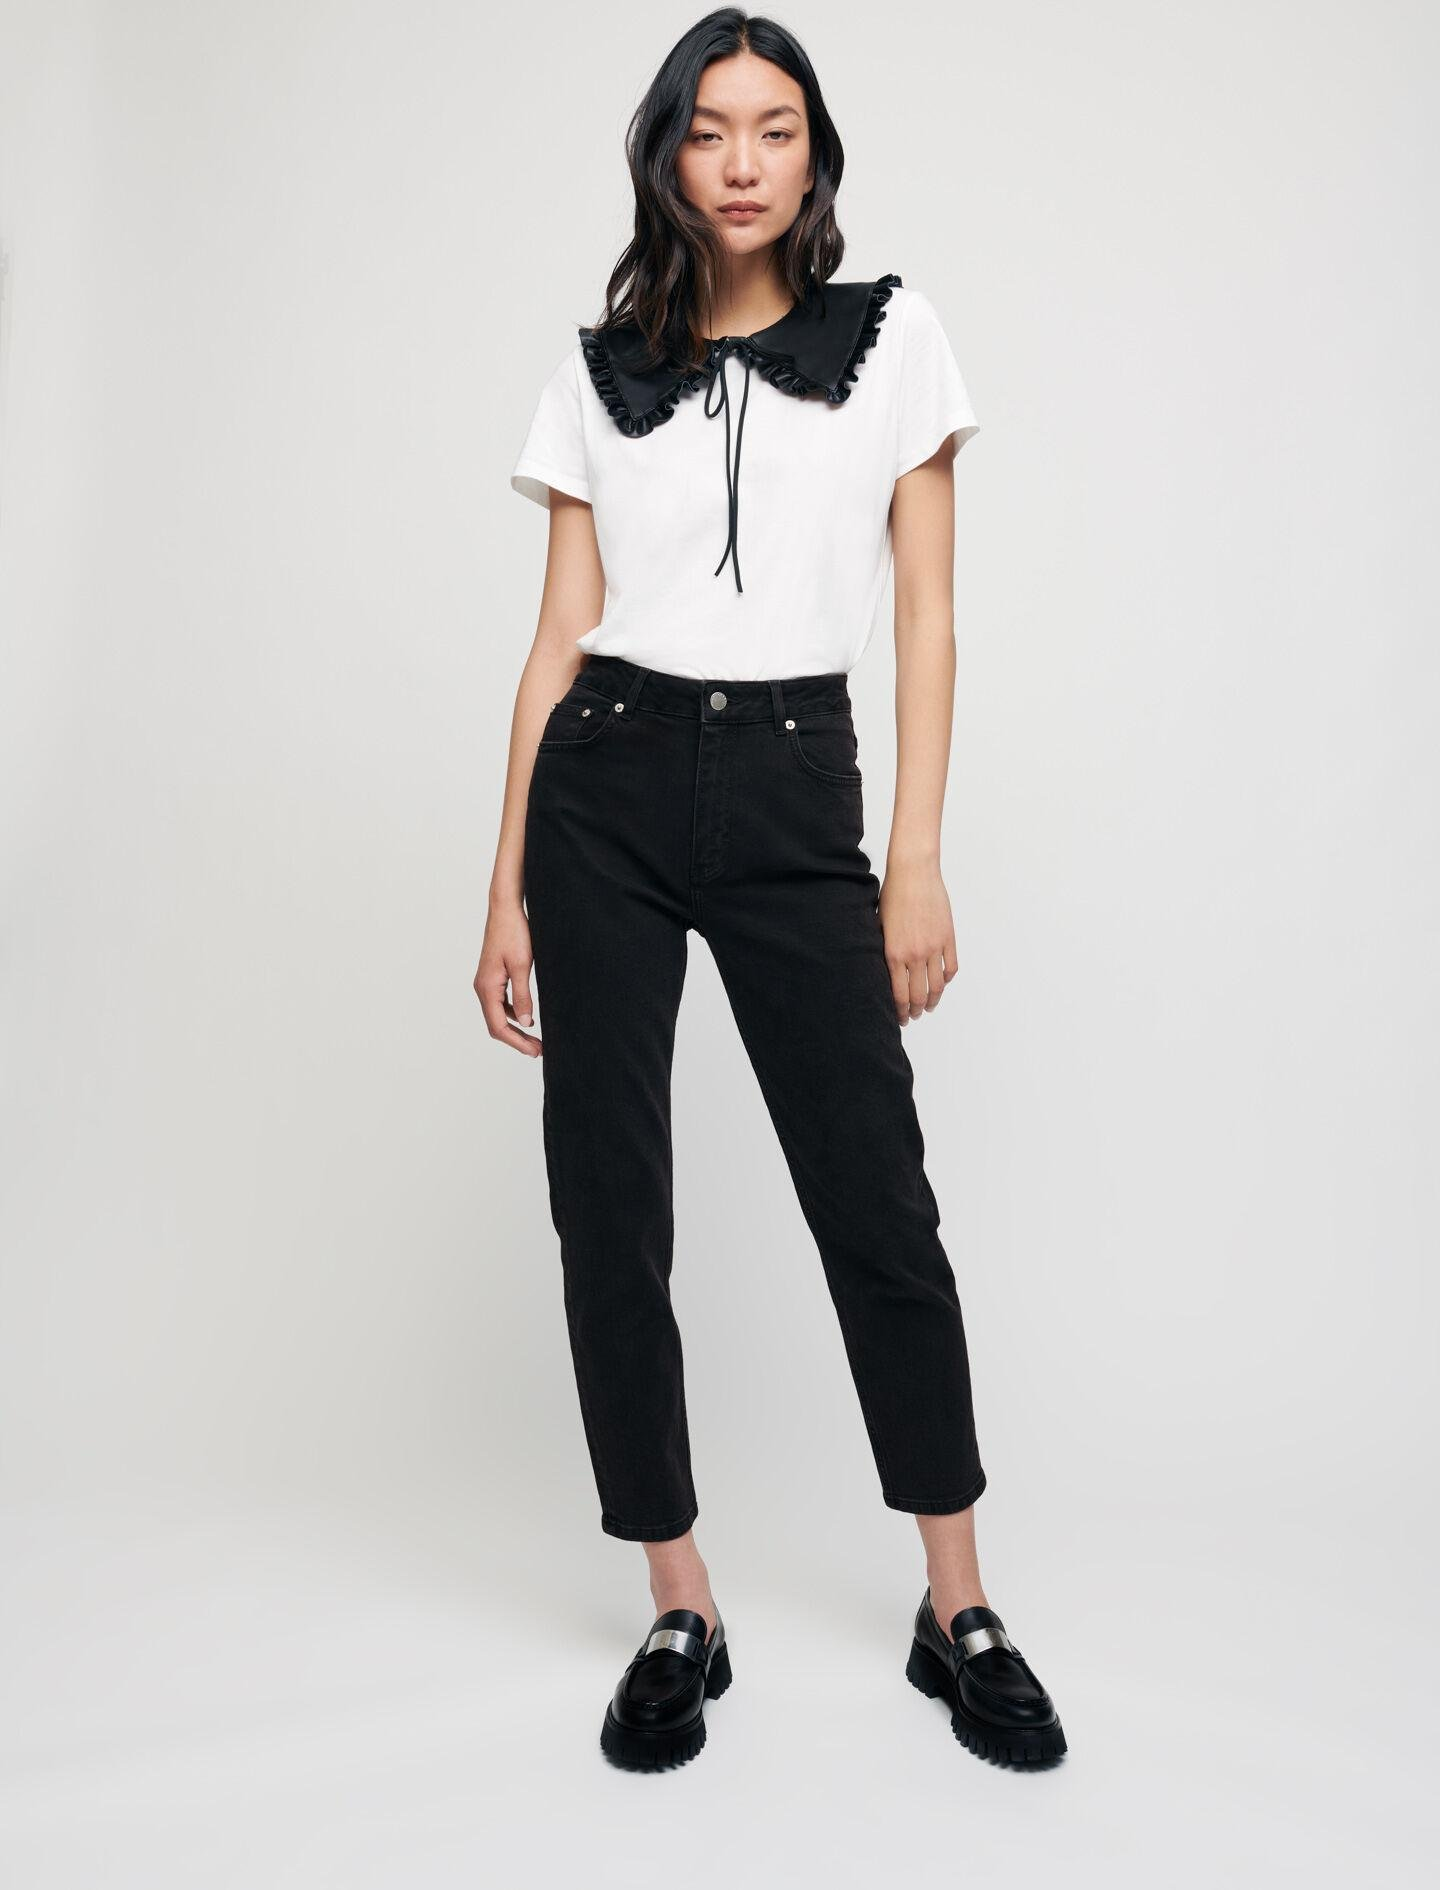 MOM-STYLE HIGH-WAISTED STRAIGHT JEANS